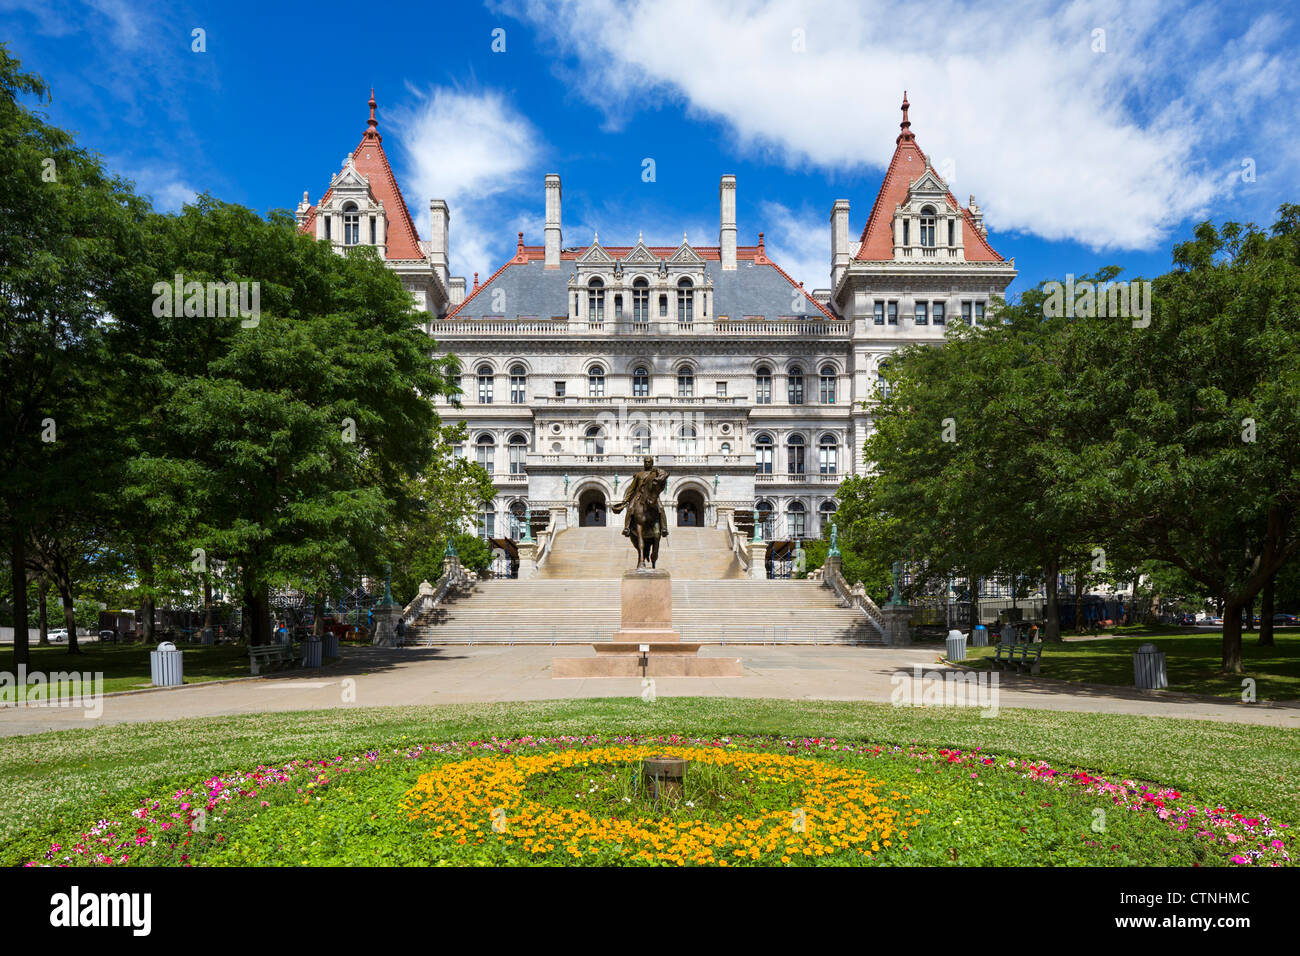 New York State Capitol, Albany, New York State, USA - Stock Image